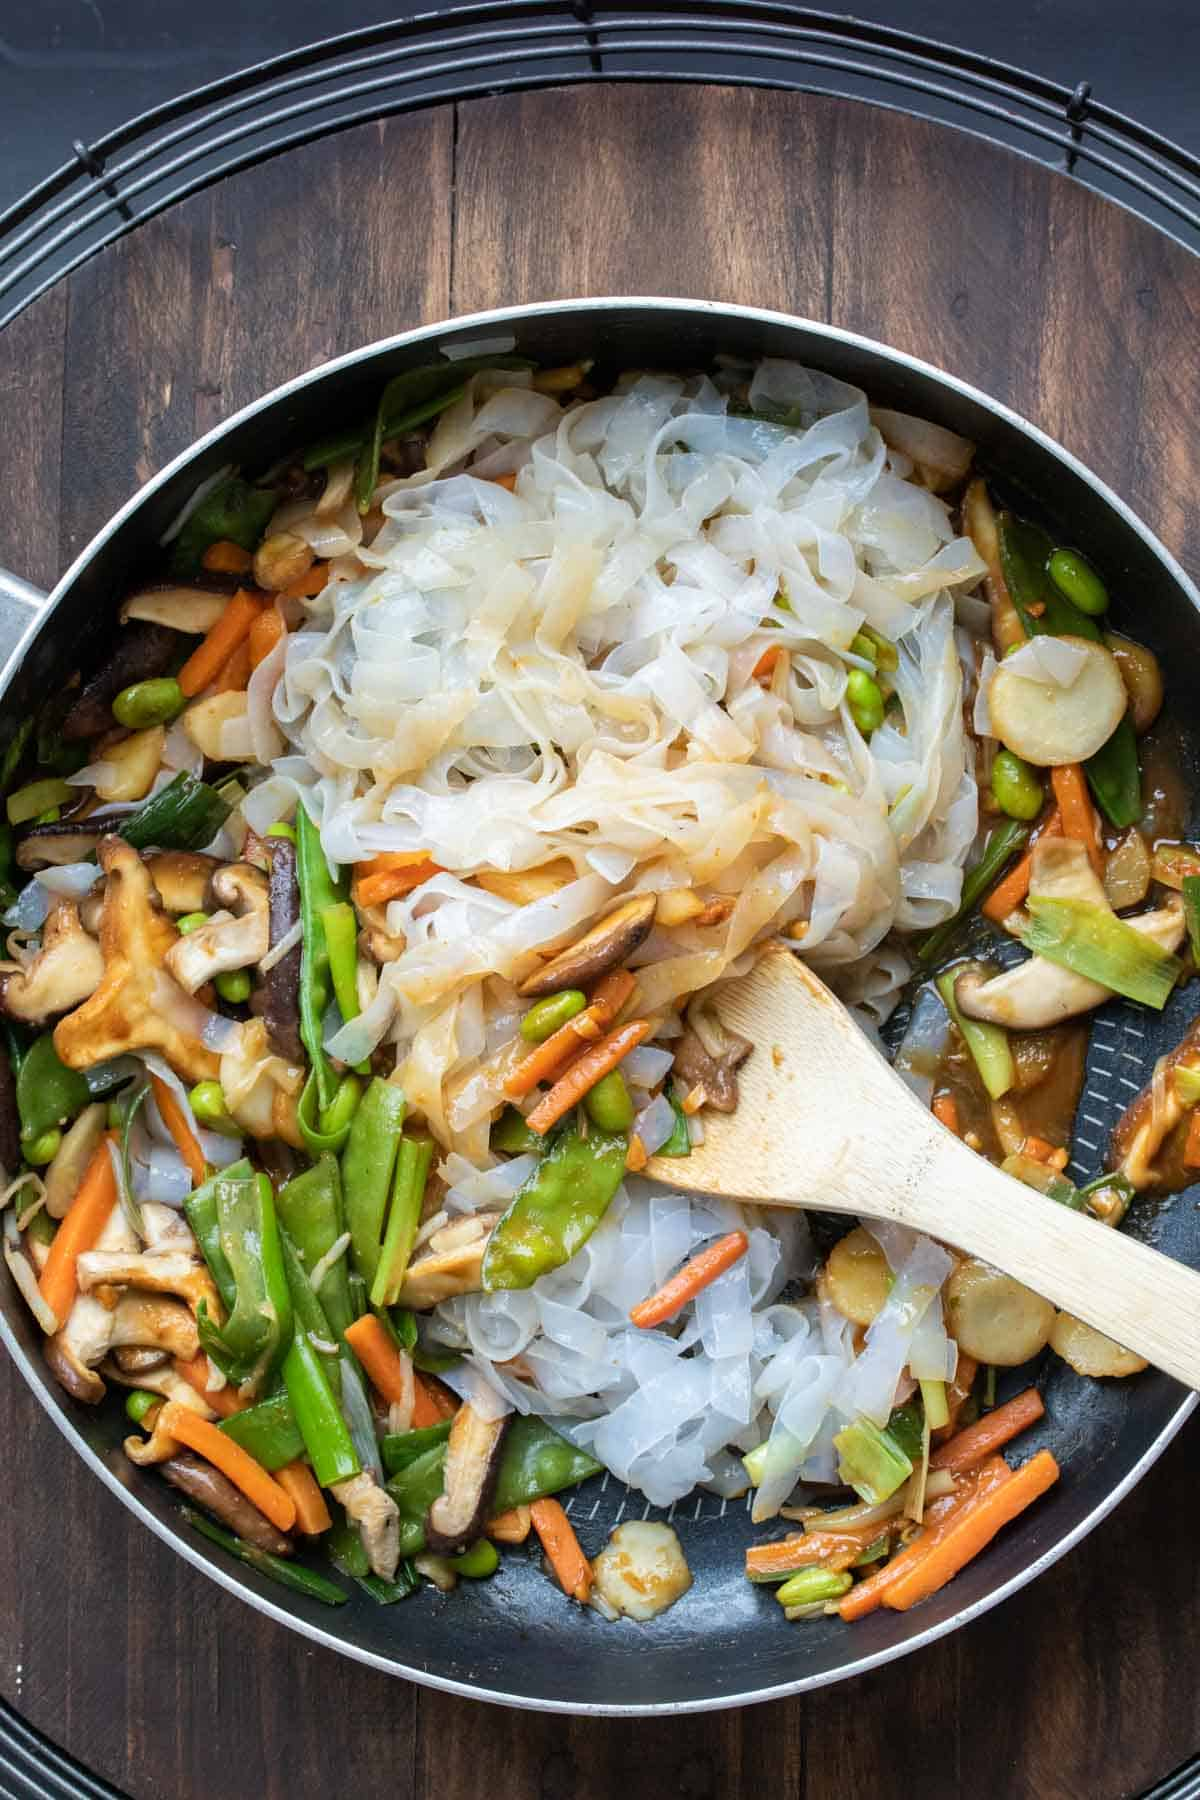 Noodles and veggies mixing with a brown sauce in a pan